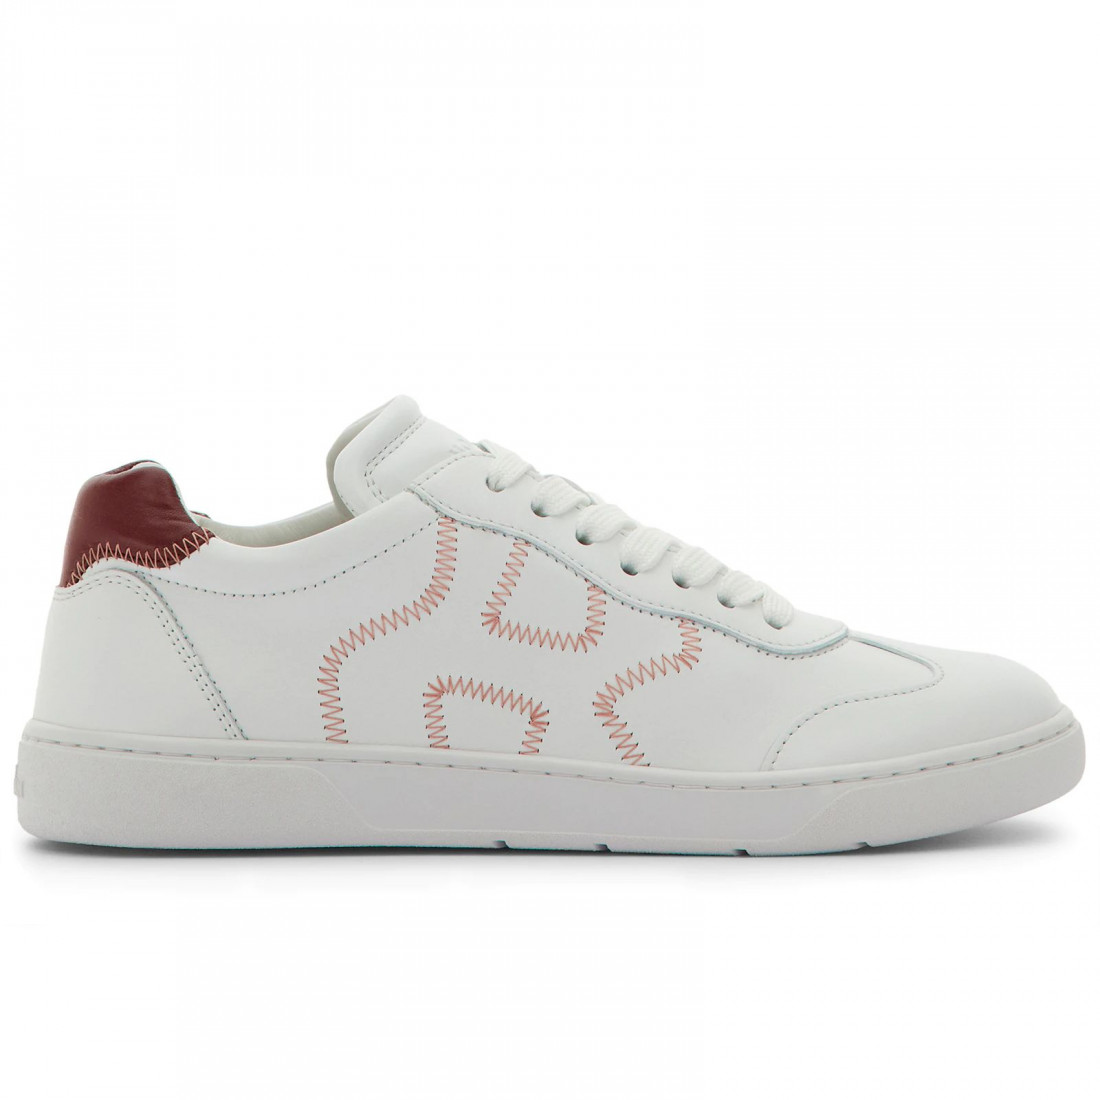 Hogan H327 women's sneaker in white and burgundy leather